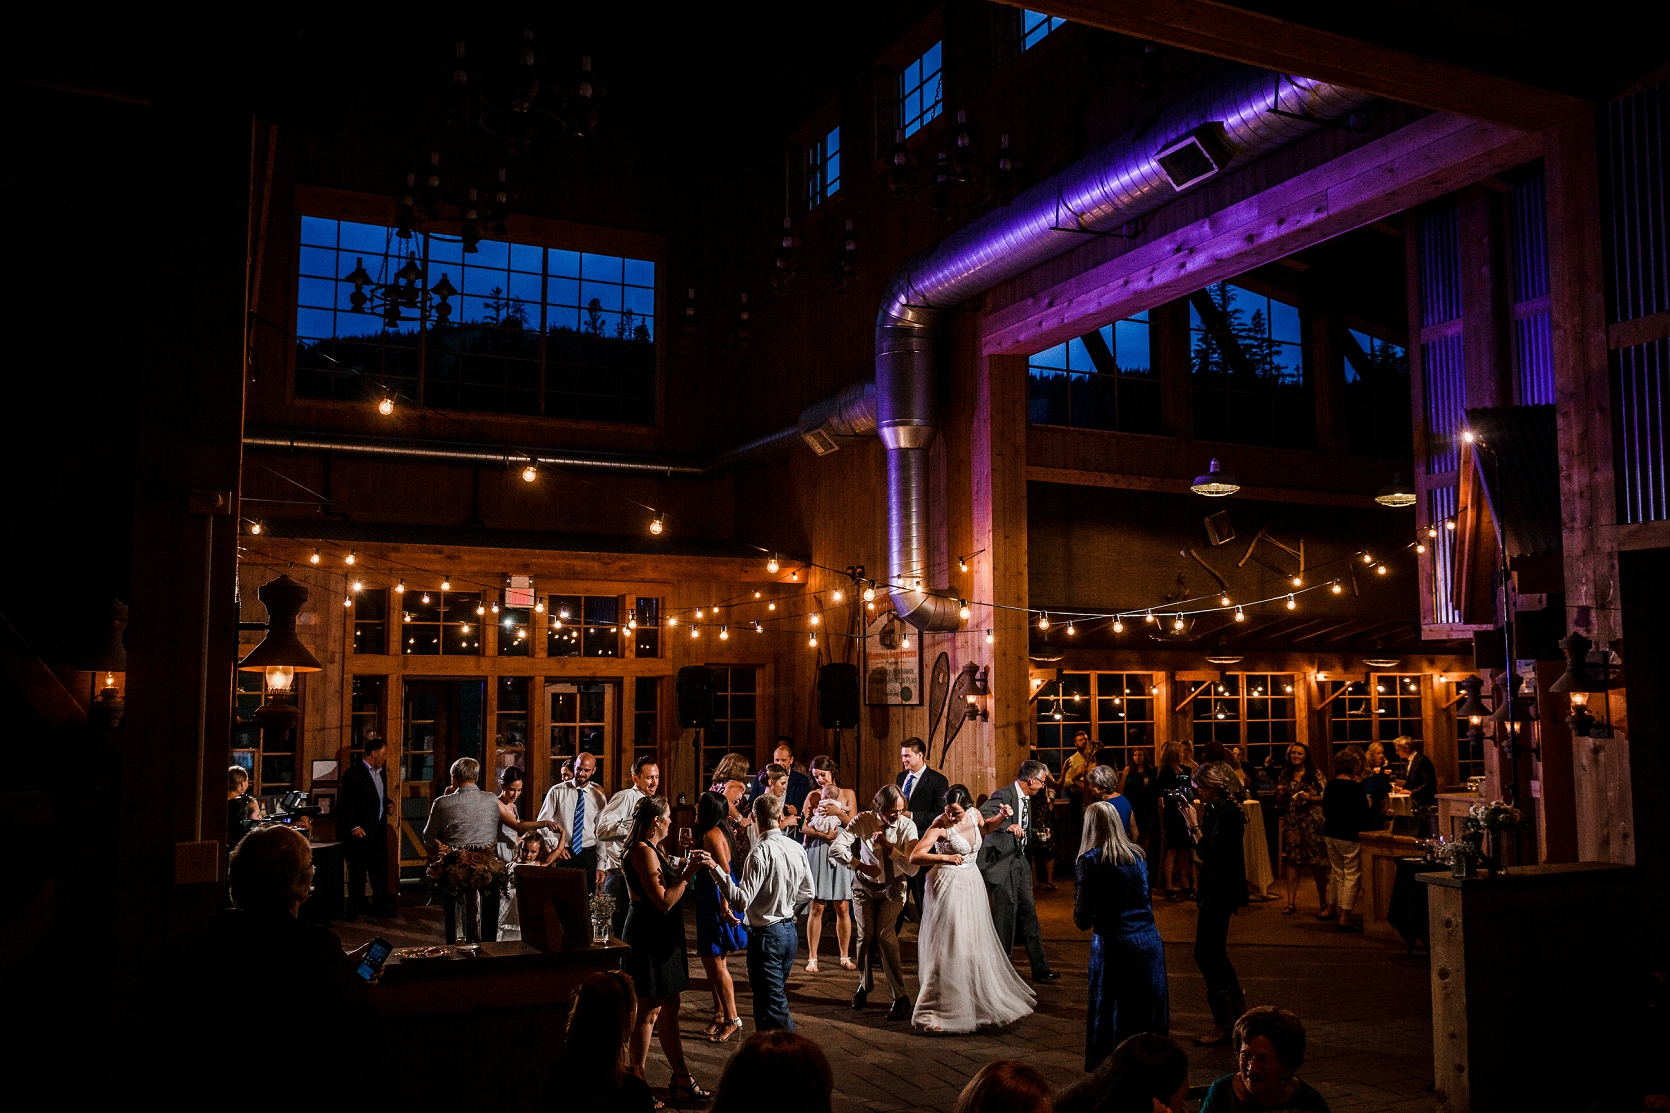 Matt Amp Jamies TenMile Station Wedding In Breckenridge